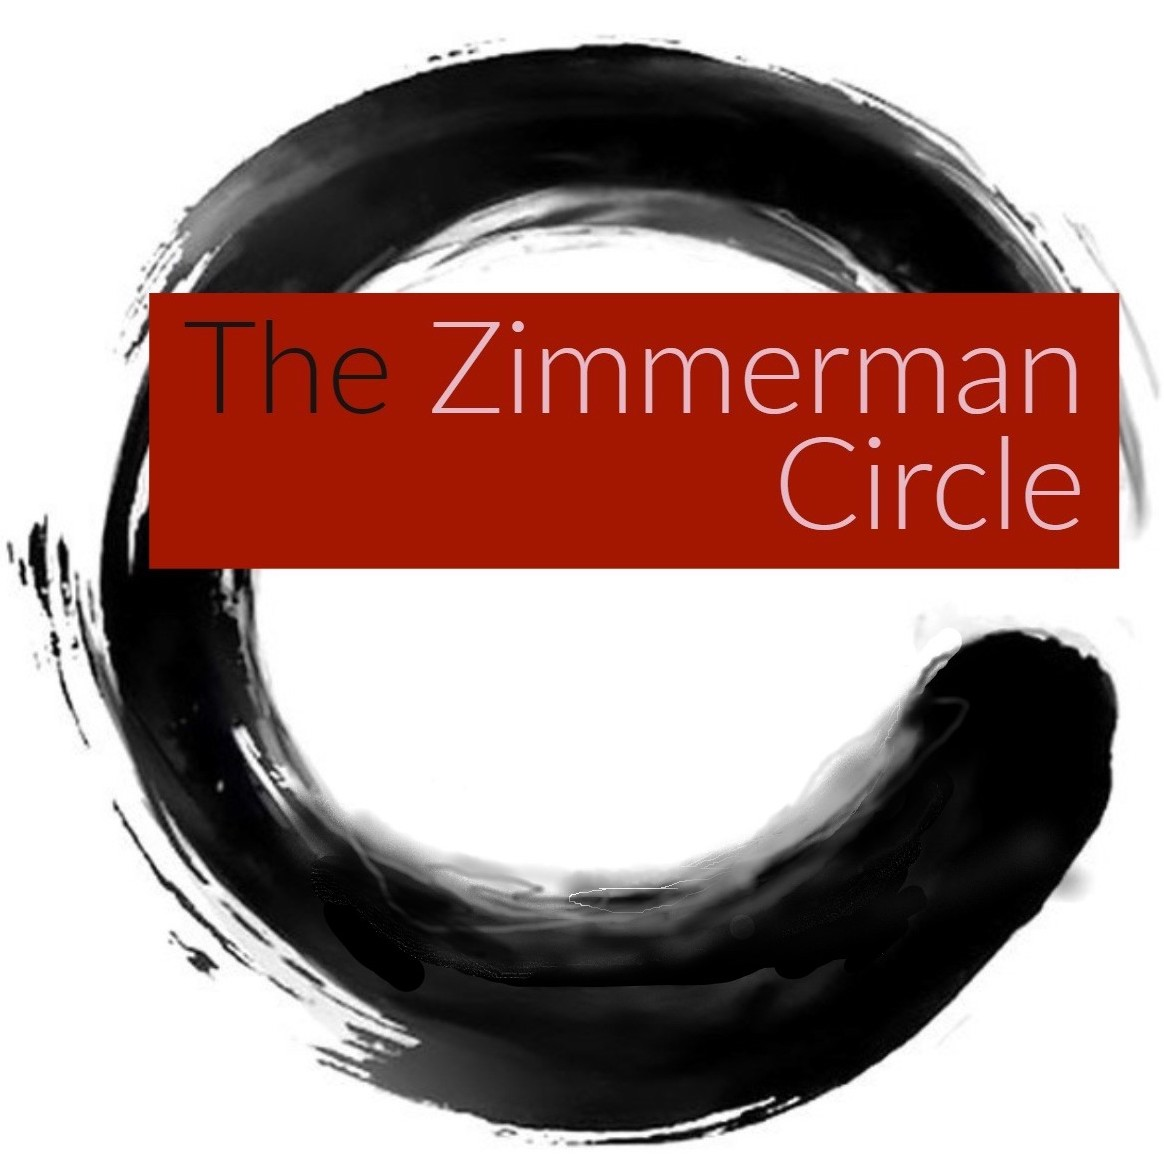 The Zimmerman Circle